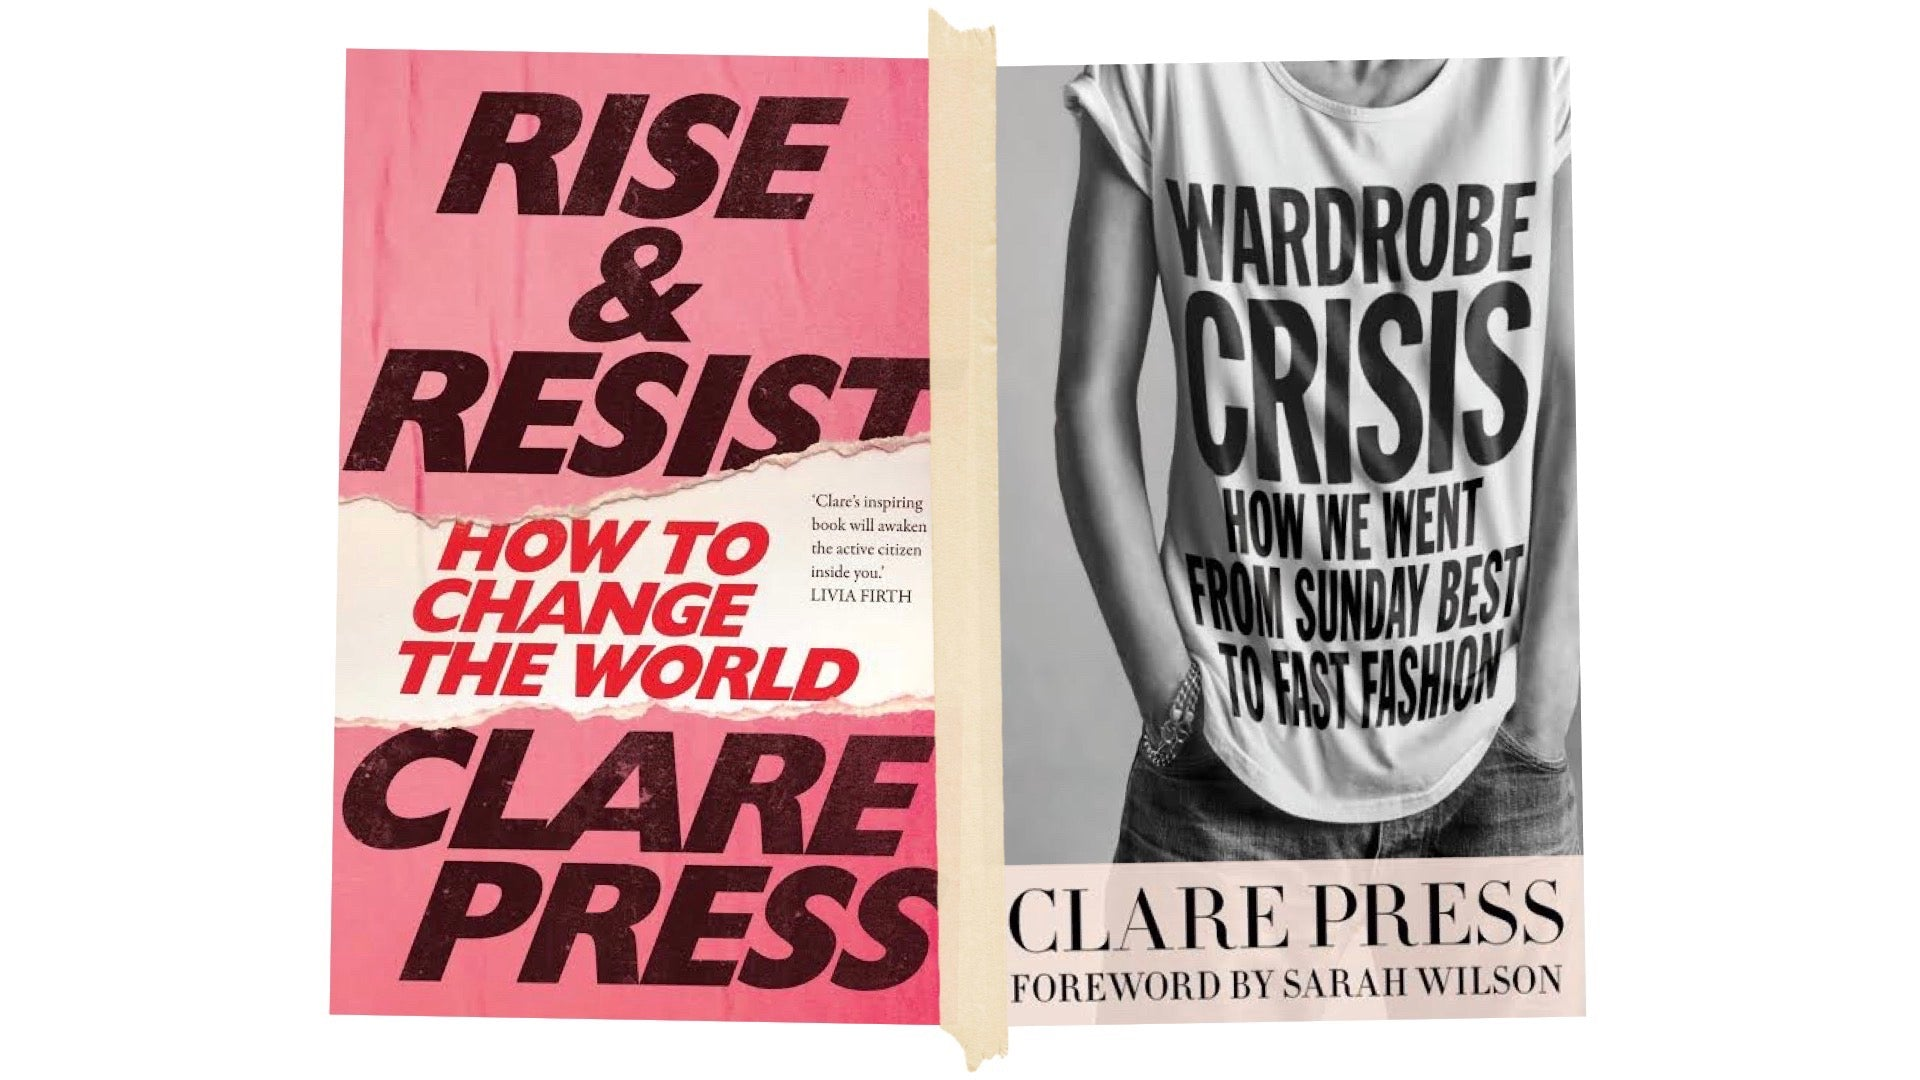 Clare Press books